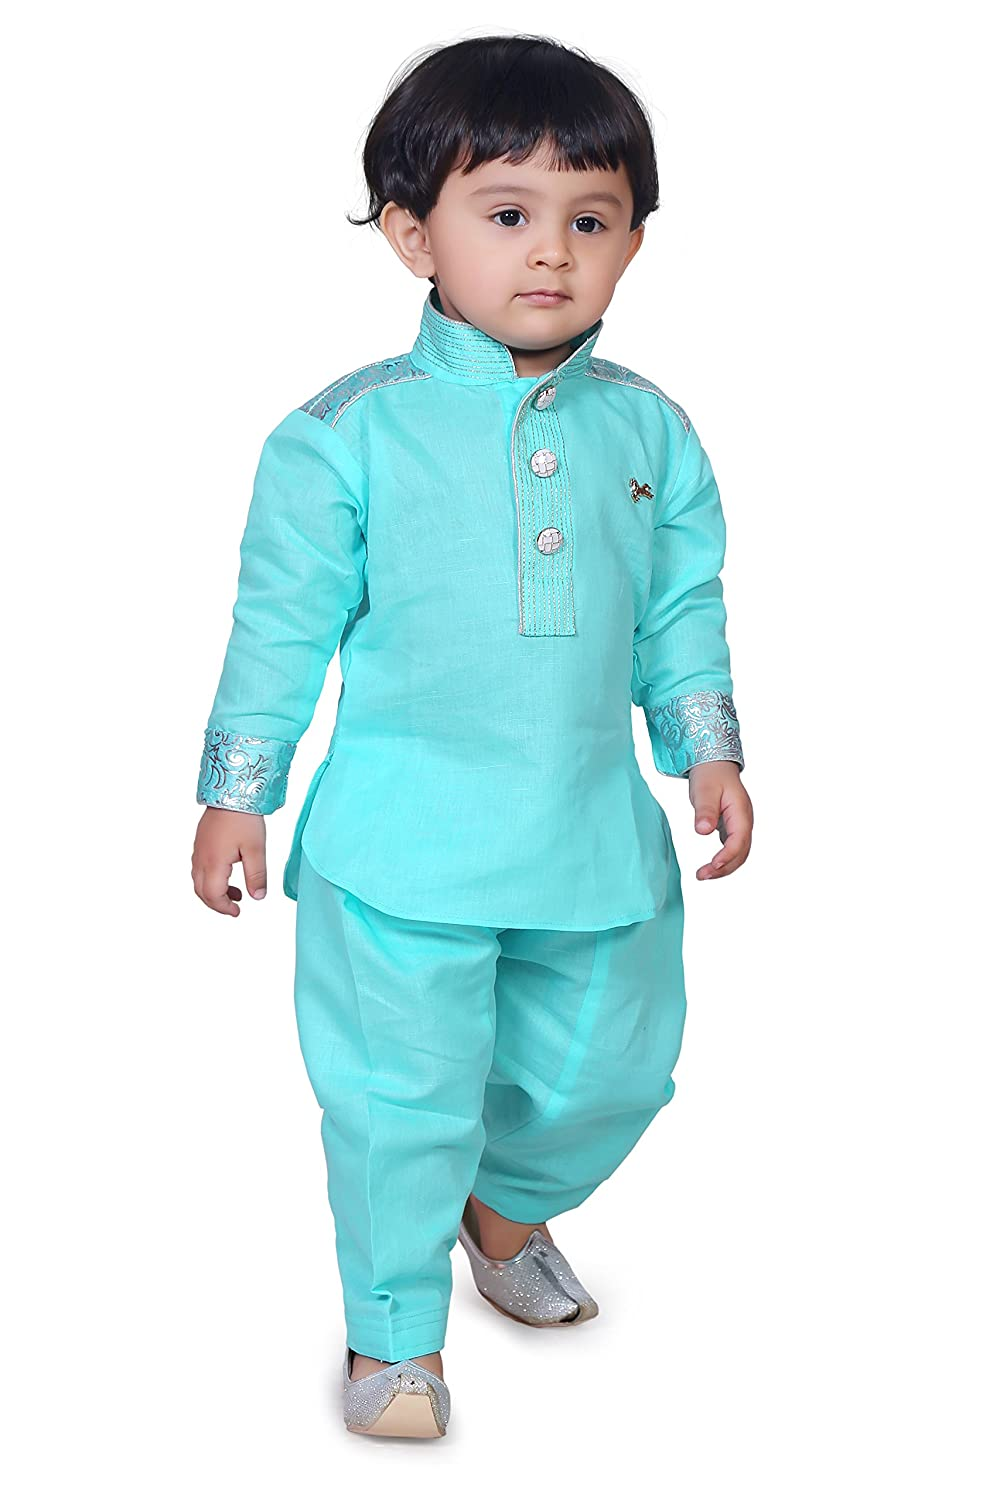 Munna Munni Classic Turquoise Blue Cotton Linen Pathan Suit for Baby ...